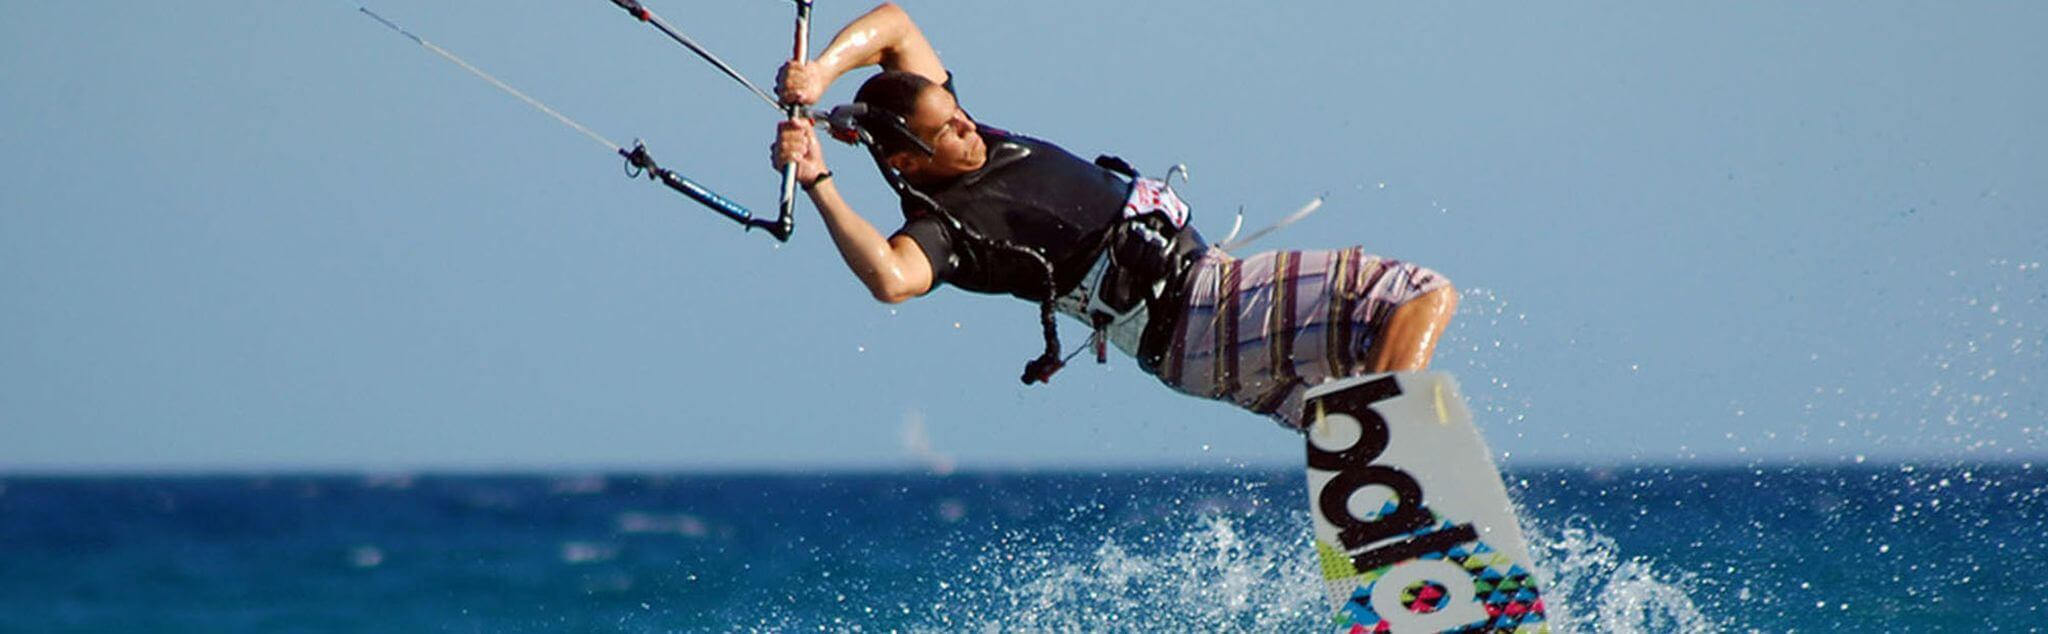 Kitesurfing in Baja California Sur